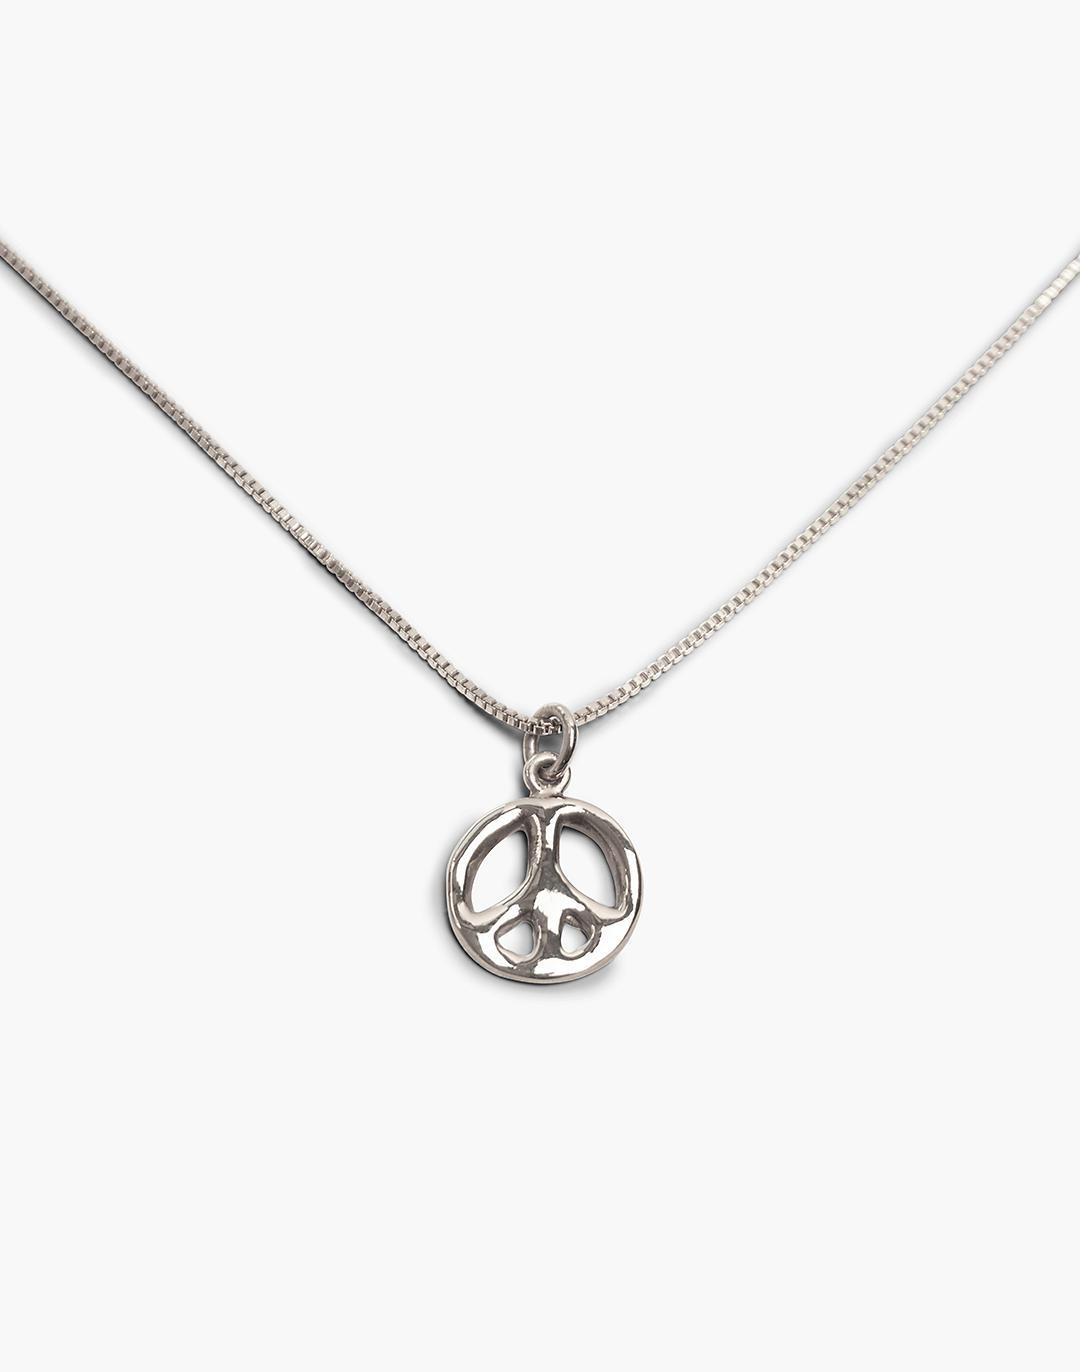 CHARLOTTE CAUWE STUDIO 1969 Peace Sign Necklace in Gold